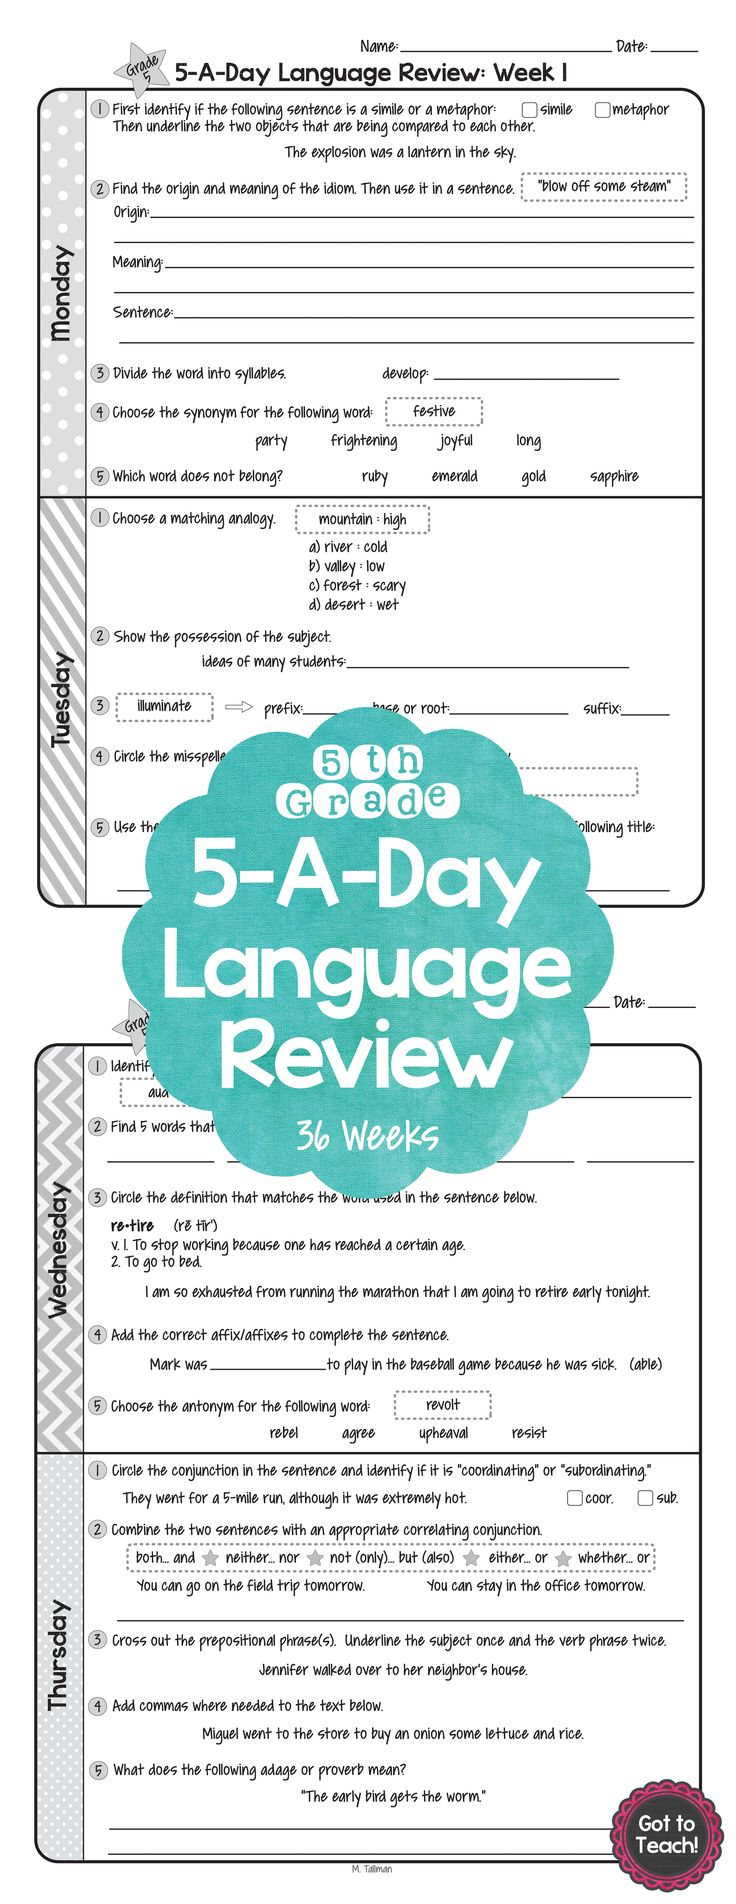 worksheet Fifth Grade Grammar Worksheets 1000 ideas about 5th grade grammar on pinterest paragraph 36 weeks of daily common core language review for 5 a